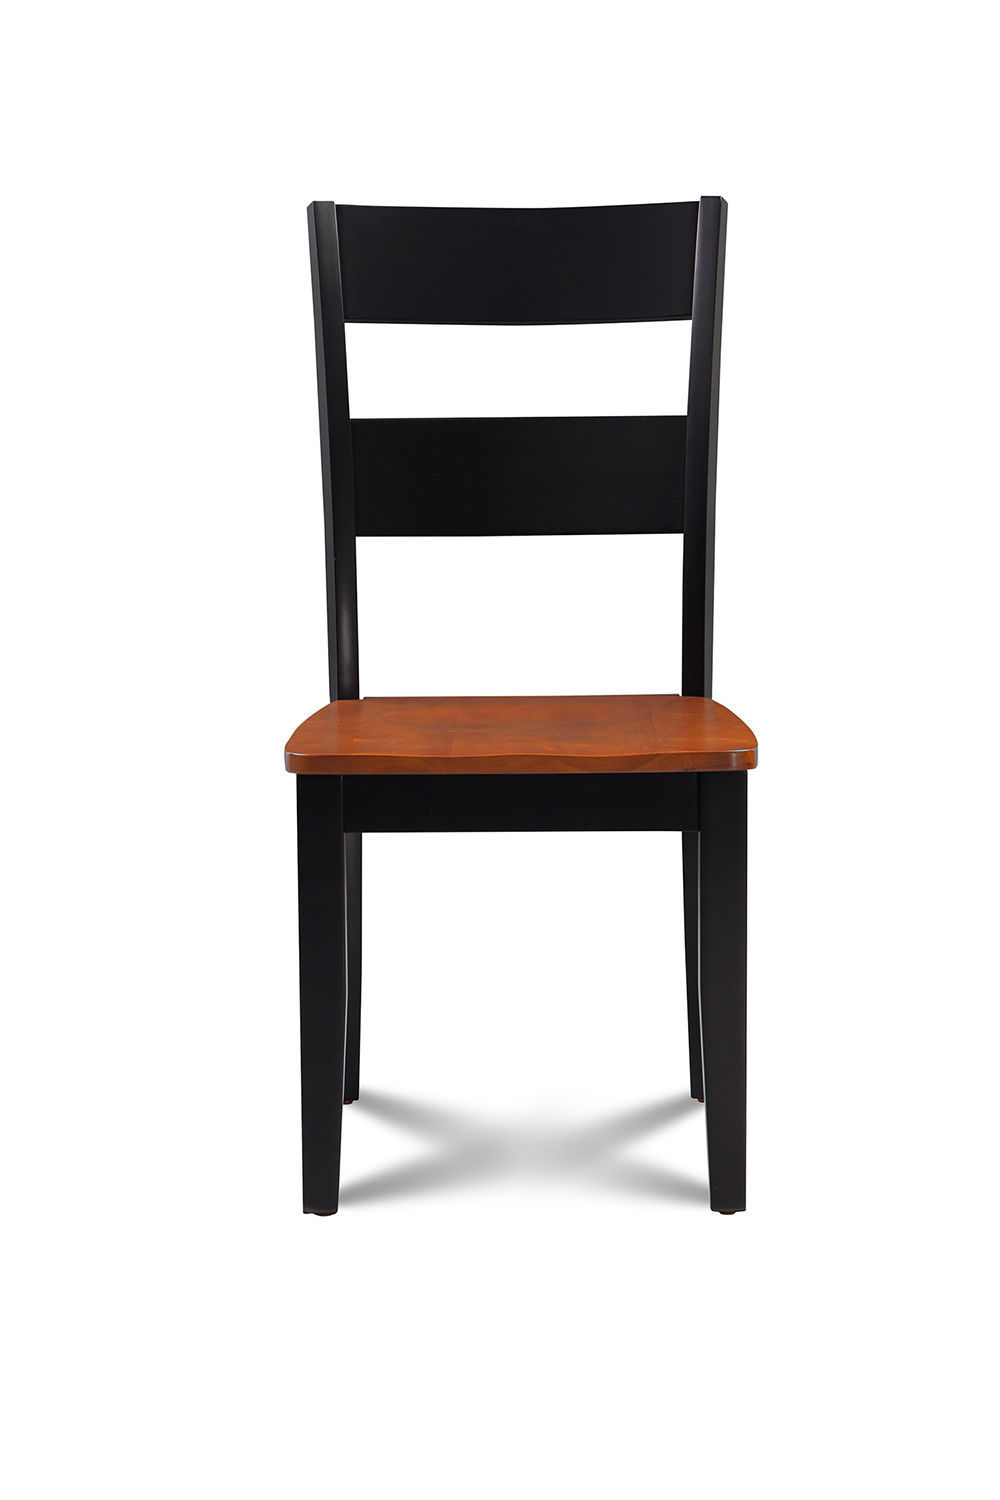 SET OF 4 KITCHEN DINING SIDE CHAIRS w/ WOODEN SEAT IN BLACK CHERRY